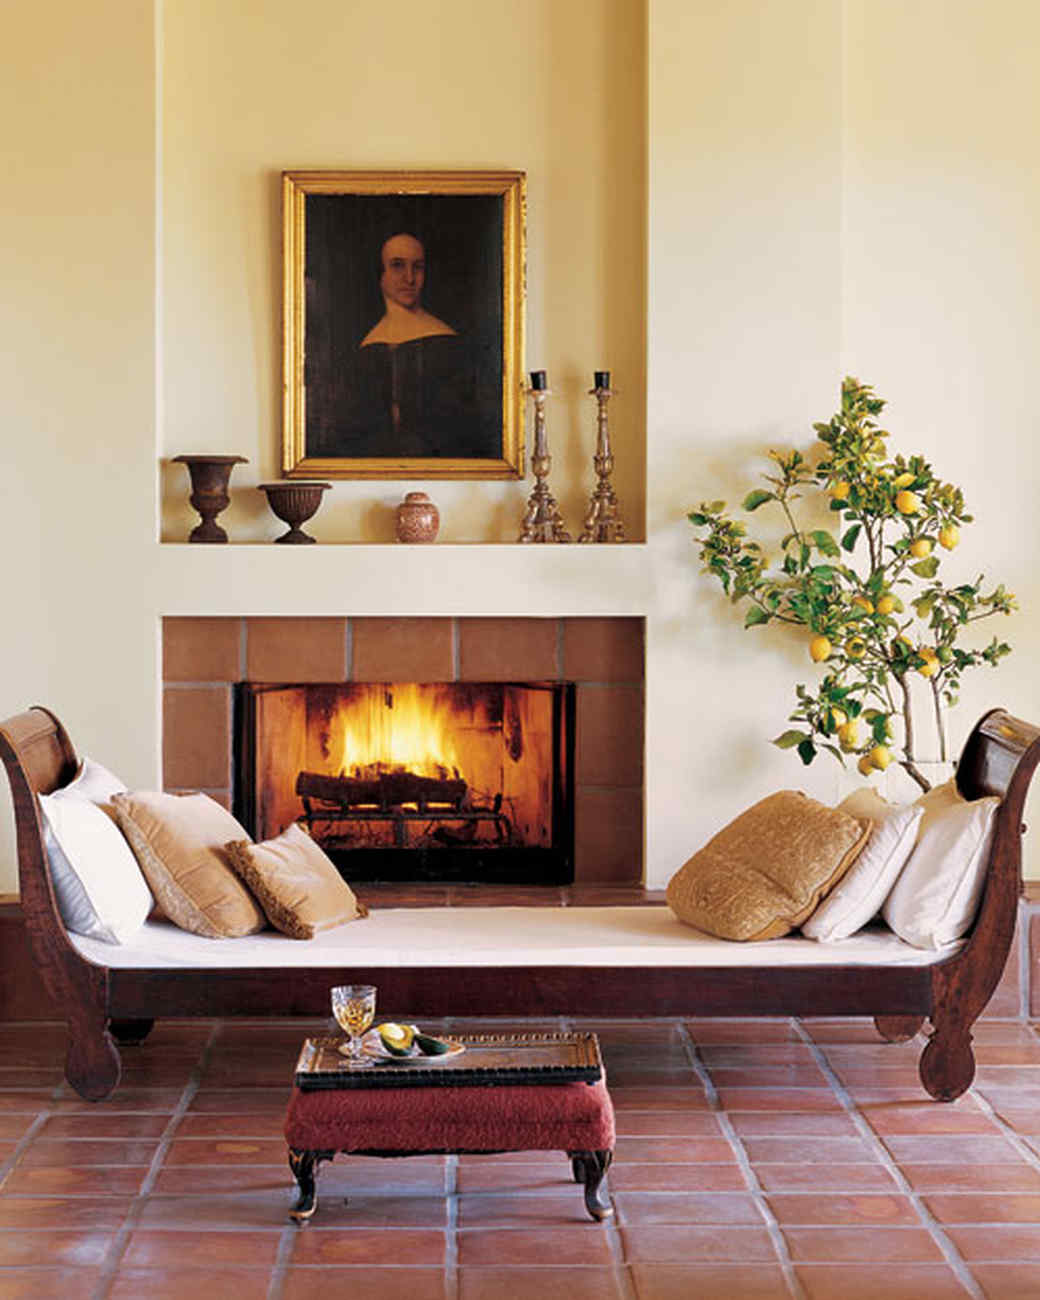 Fireplace Surround Tile Ideas Part - 44: Inviting Spot